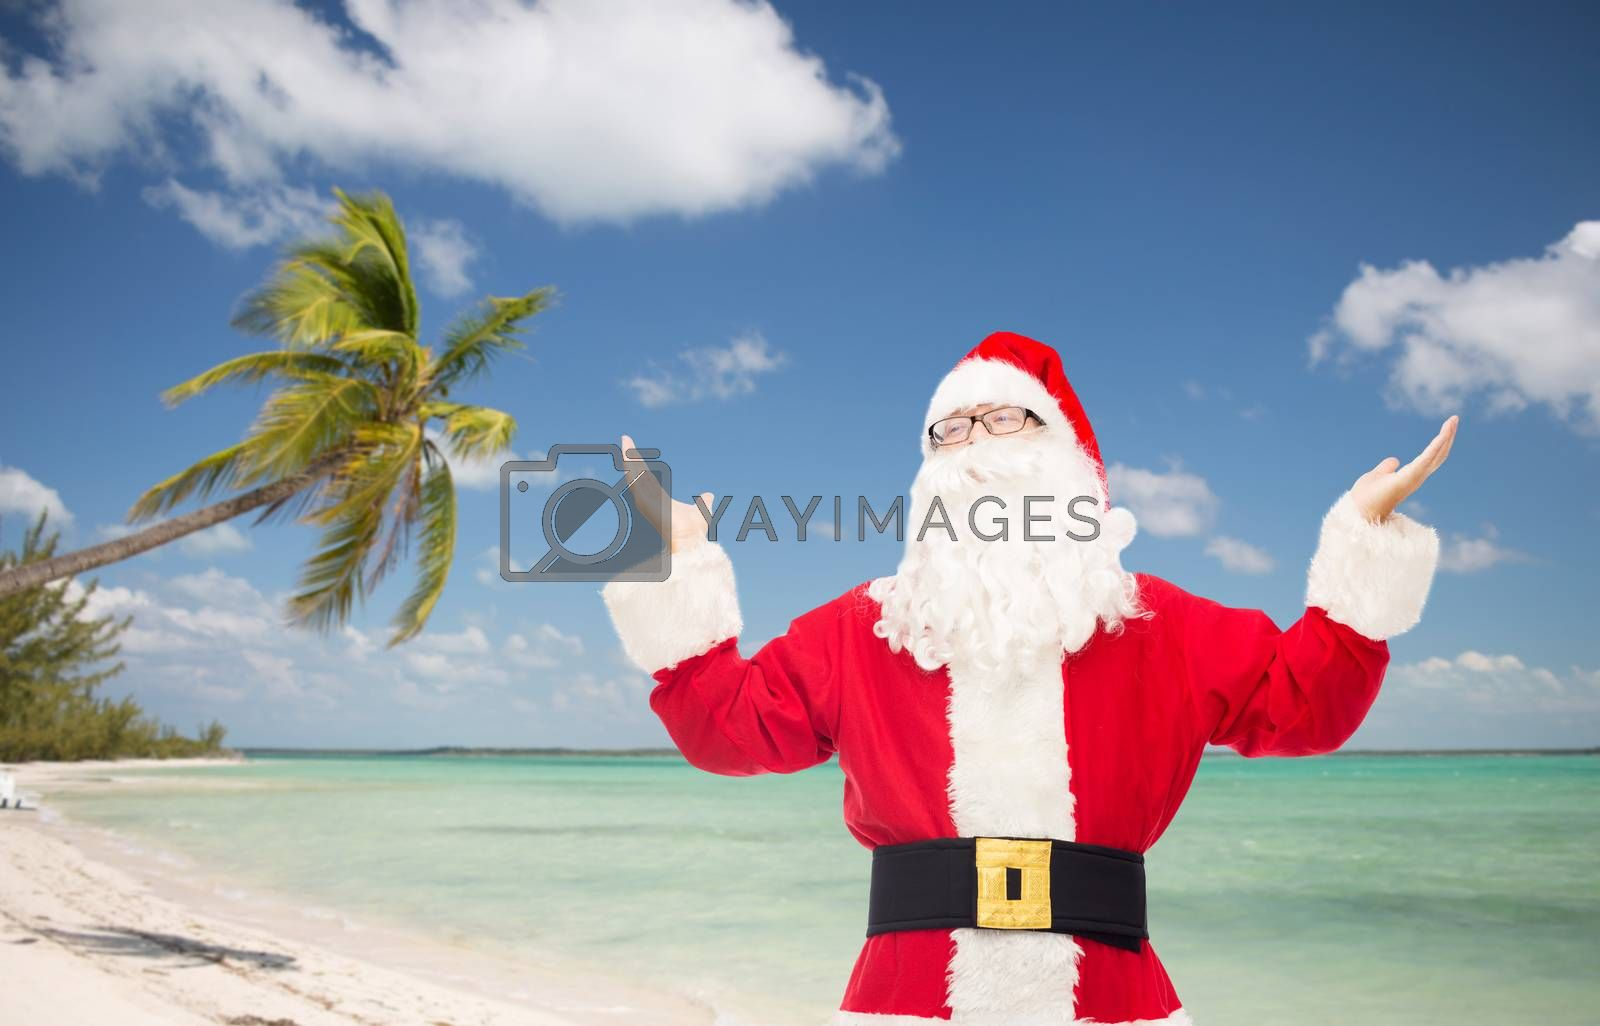 christmas, holidays, travel and people concept - man in costume of santa claus with raised hands over tropical beach background